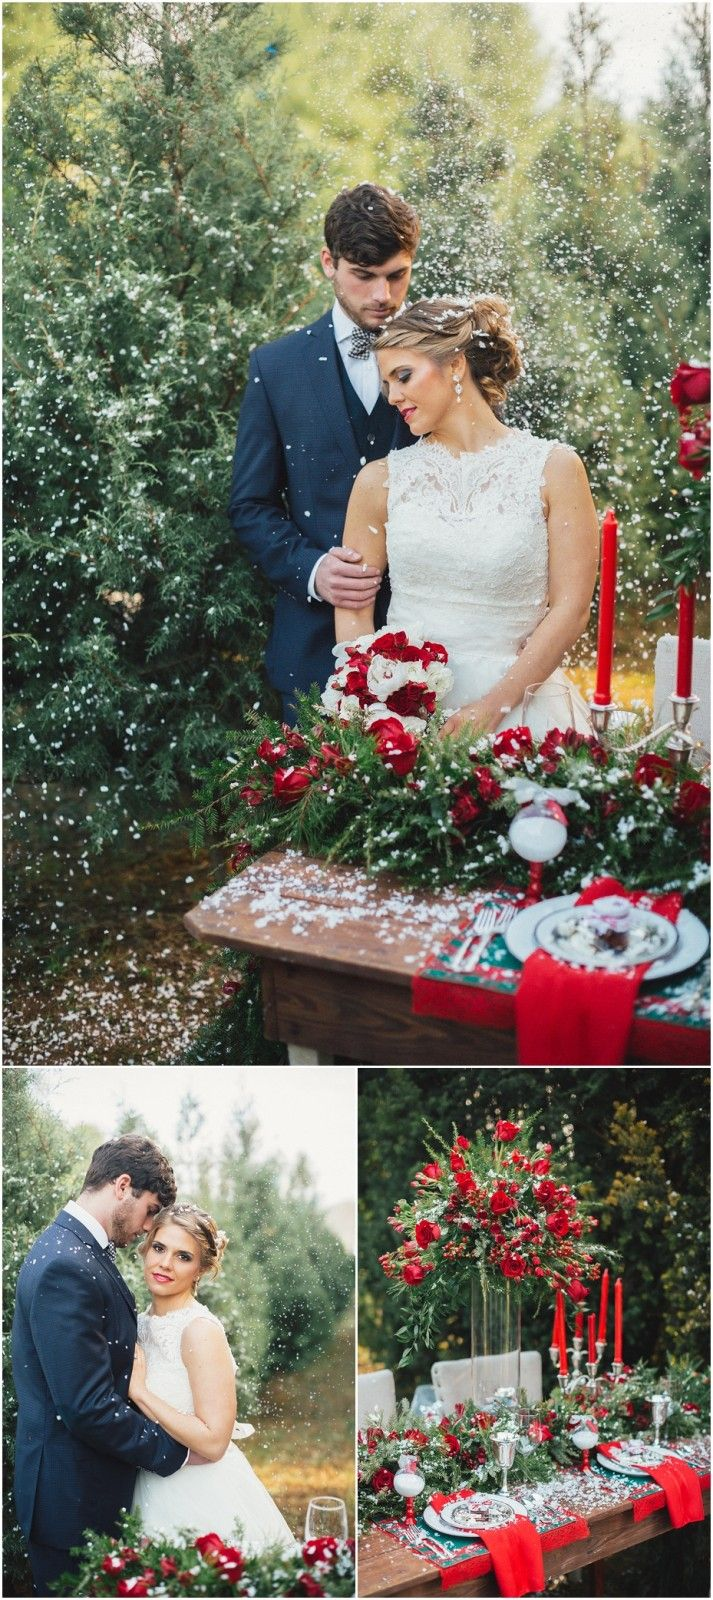 Snow wedding ideas and inspiration at a Christmas Tree Farm. Click to view more!